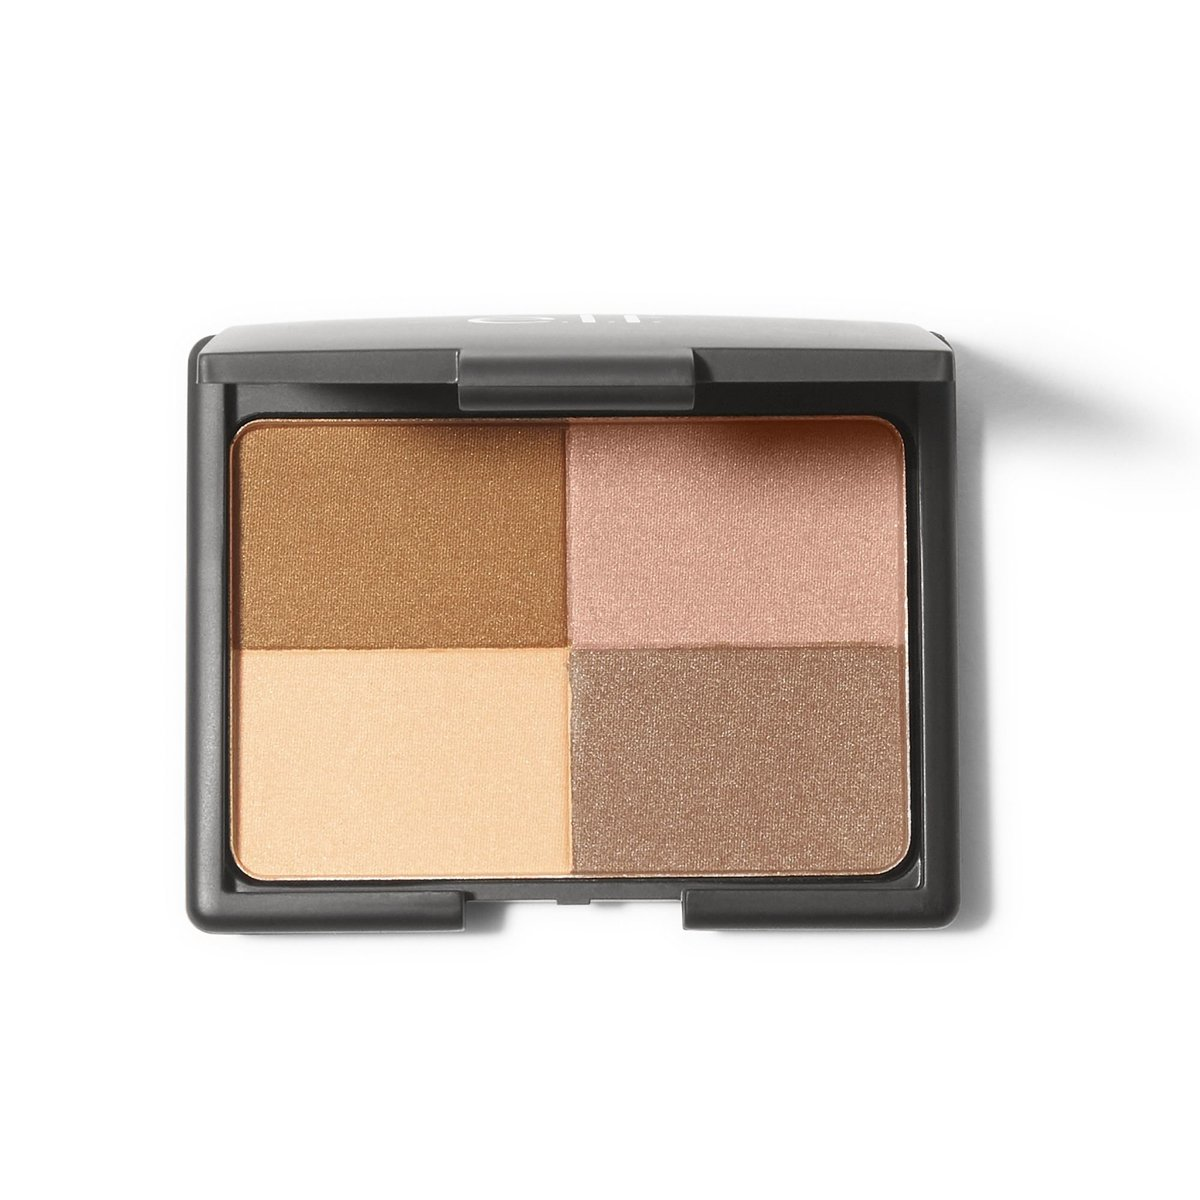 e.l.f. Bronzer (Warm) 15g [Parallel Imports Product]